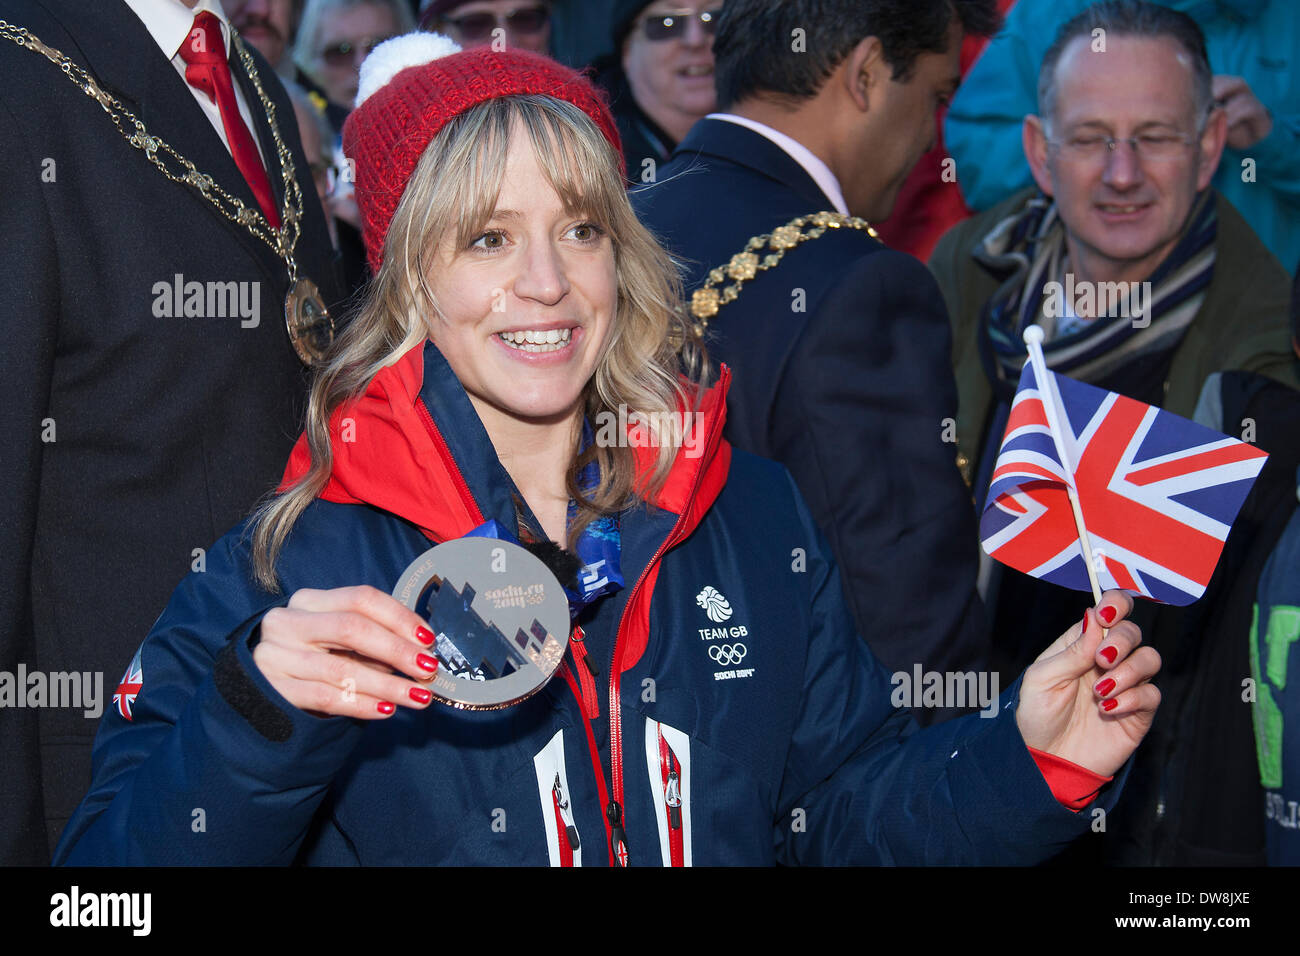 Bristol, UK. 3rd Mar, 2014. Snowboarder Jenny Jones toured through the streets of Bristol on an open top bus to celebrate her bronze medal win at the Sochi winter Olympics.  The bus went from her home area of Downend in South Gloucestershire to the Council Offices in Bristol city centre.  Afterwards she attended a reception in the council offices.  Supporters turned out along the route waving Union Jack flags in Bristol, March 3rd 2014. Credit:  Redorbital Photography/Alamy Live News - Stock Image